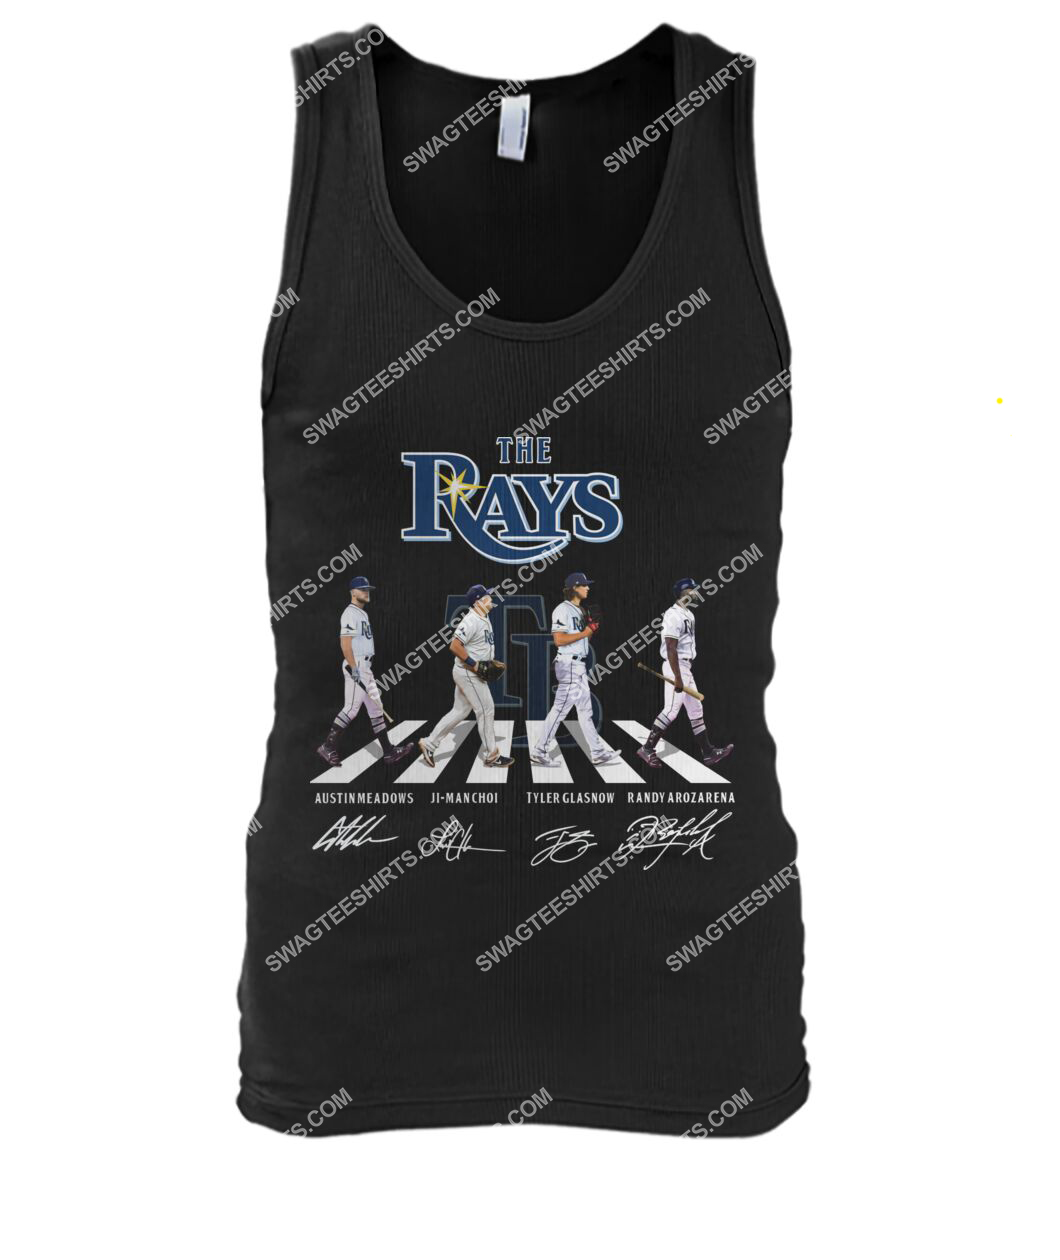 the tampa bay rays walking abbey road tank top 1